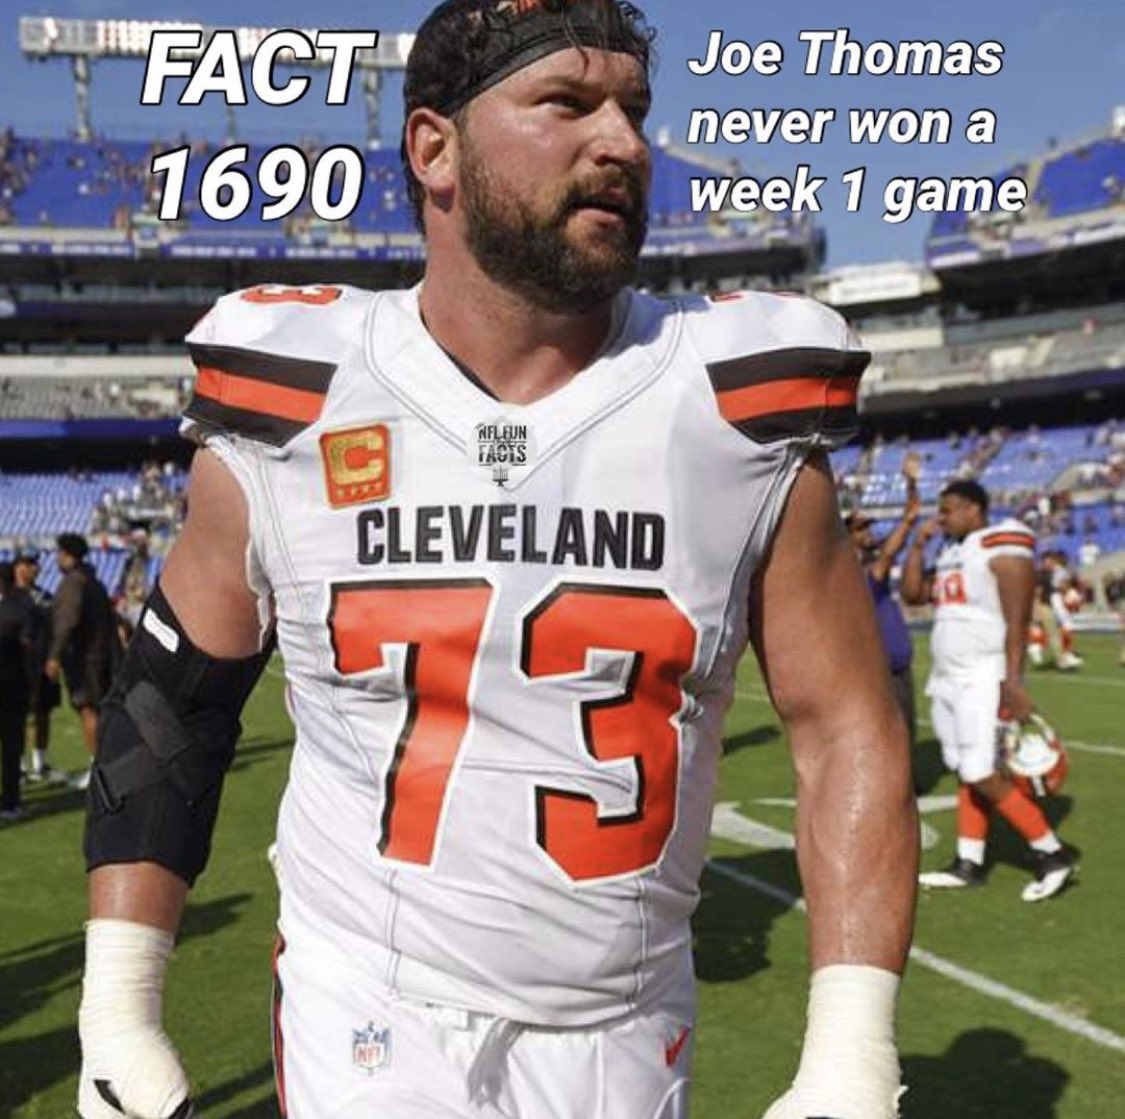 Hey @joethomas73 I'm just fact checking here but if it's true, I'm demanding that #WinWeek1ForJoe starts trending right now. Come on @Browns fans.